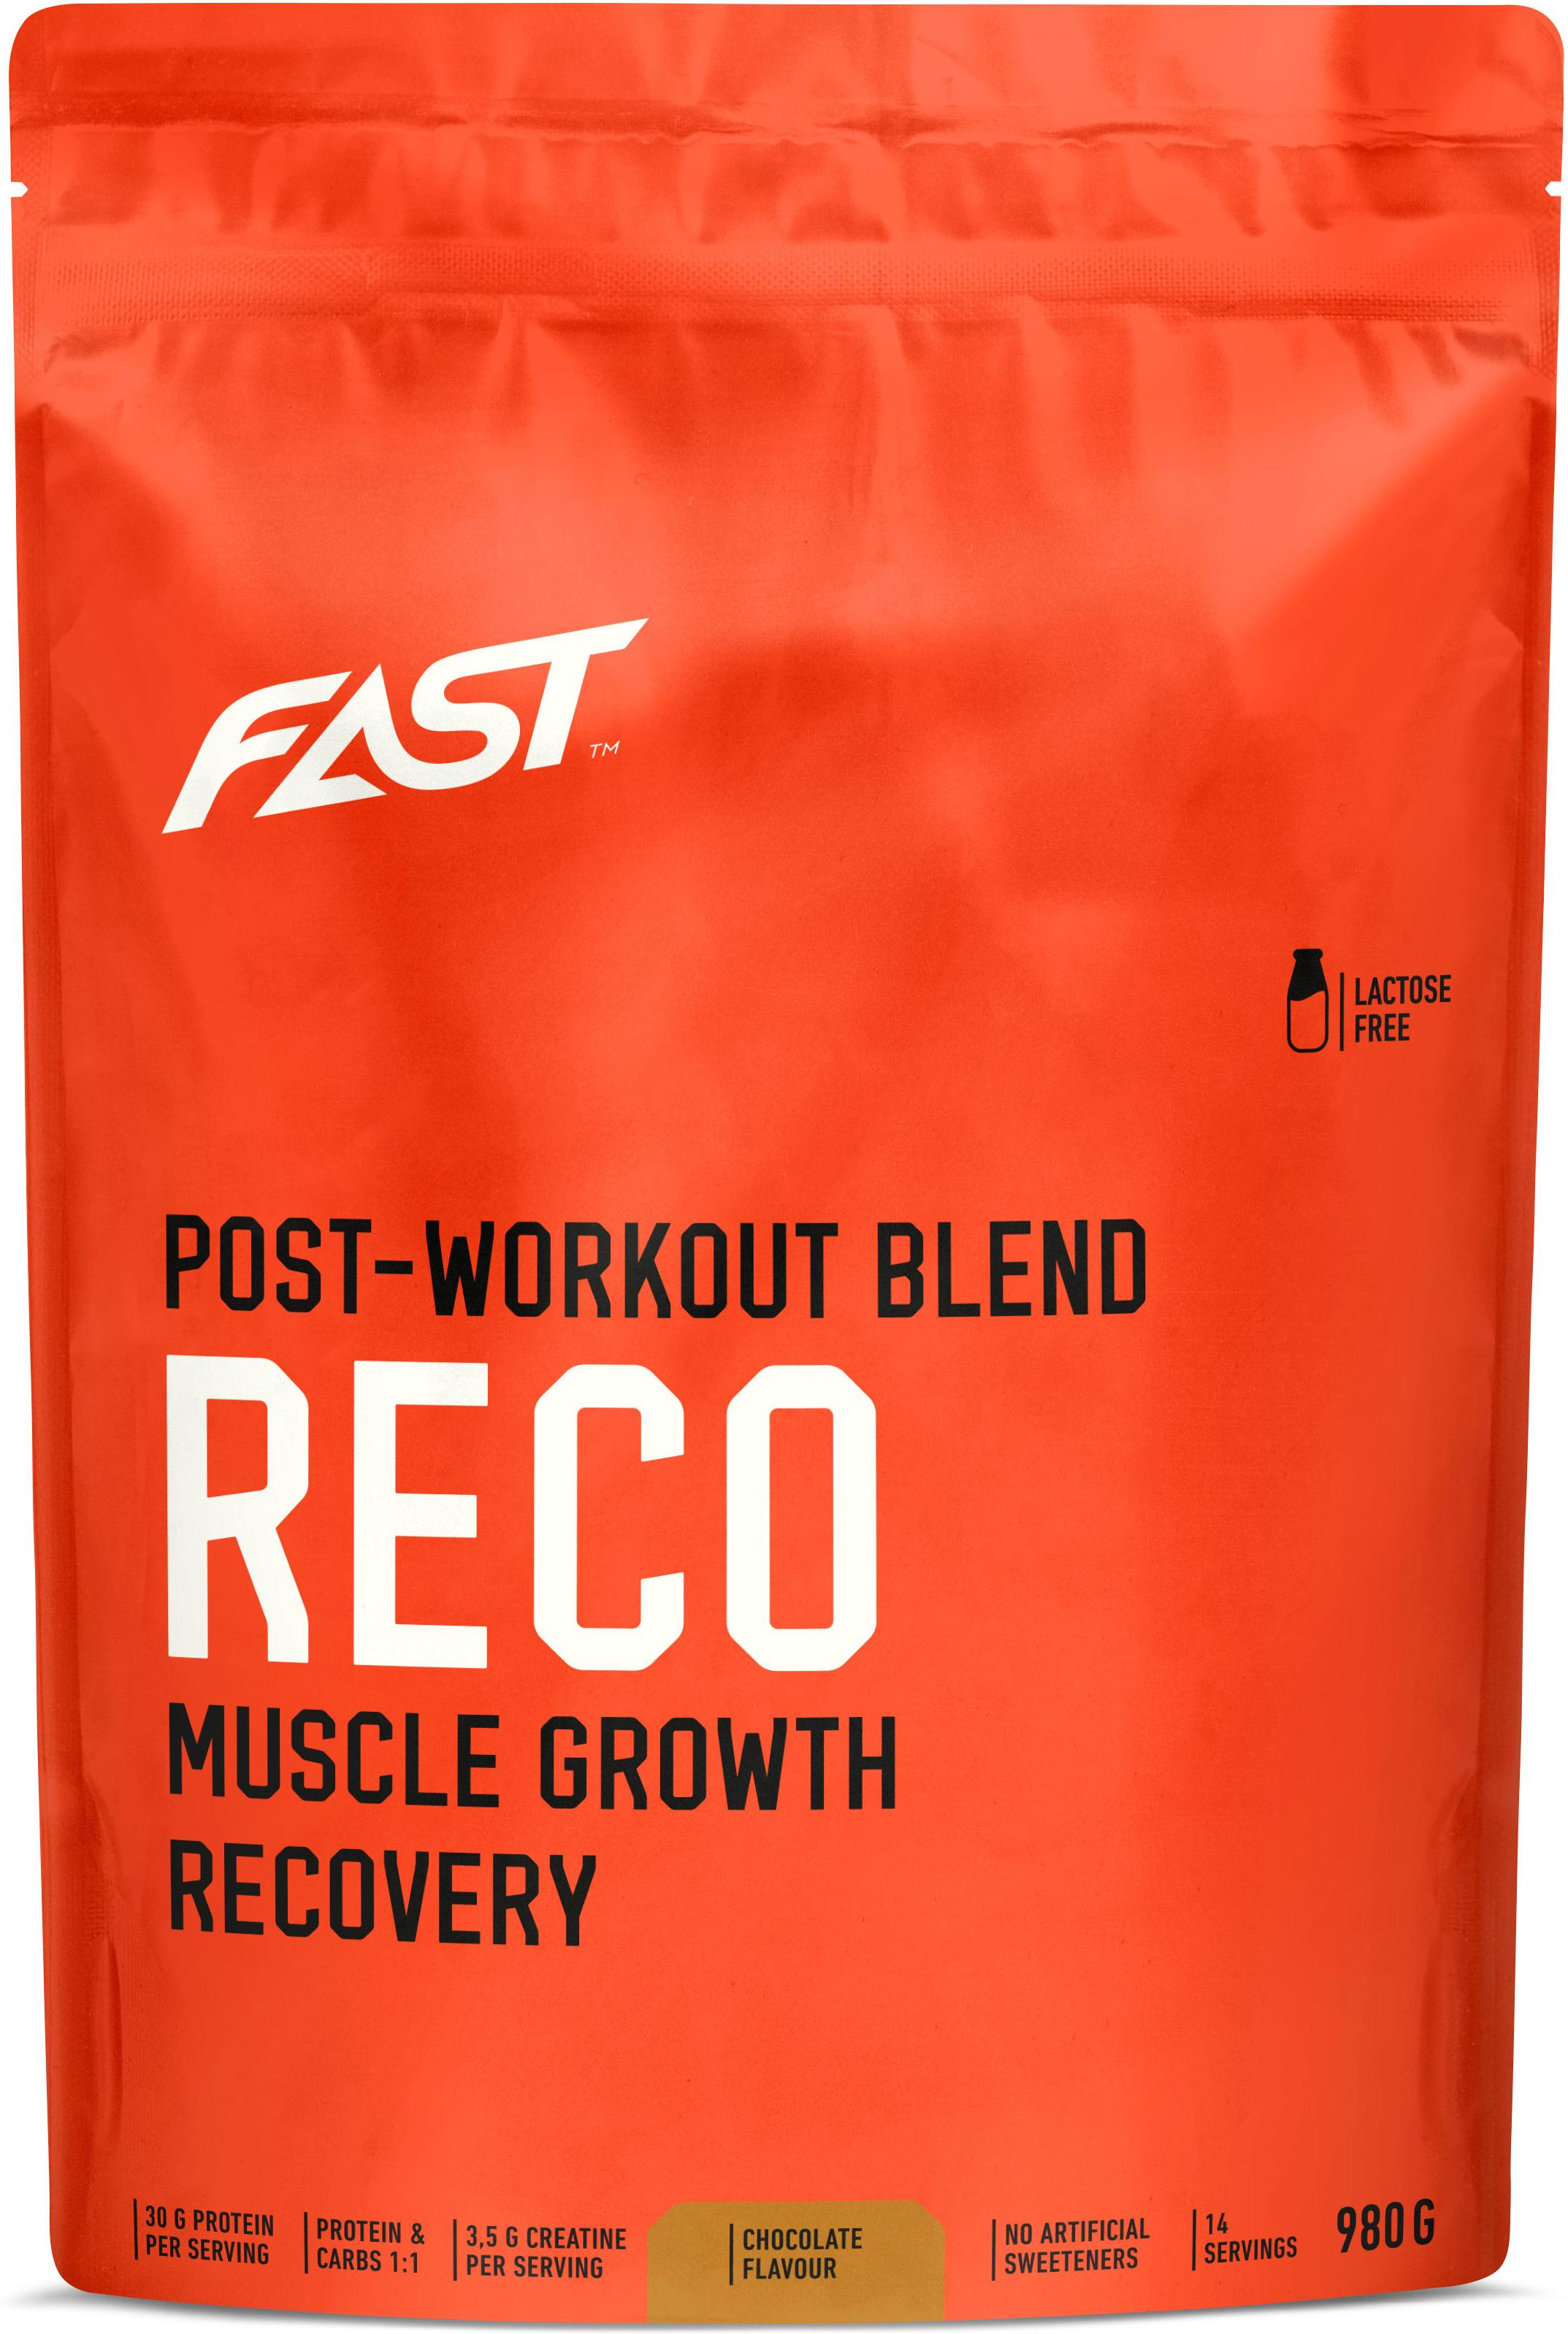 Bautura FAST FAST RECO CHOCOLATE 980g